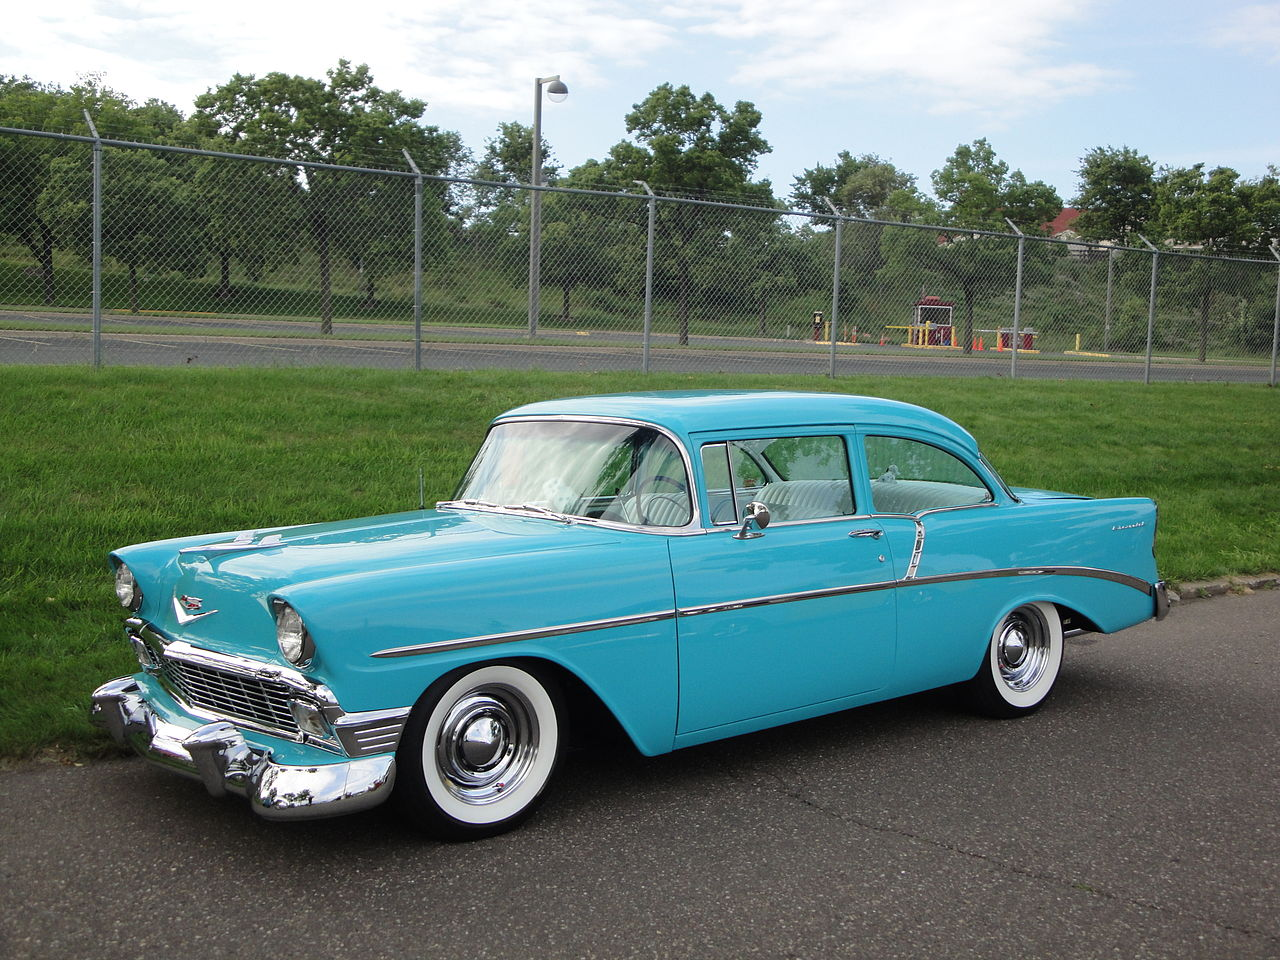 Chevy Belair Project Cars For Sale